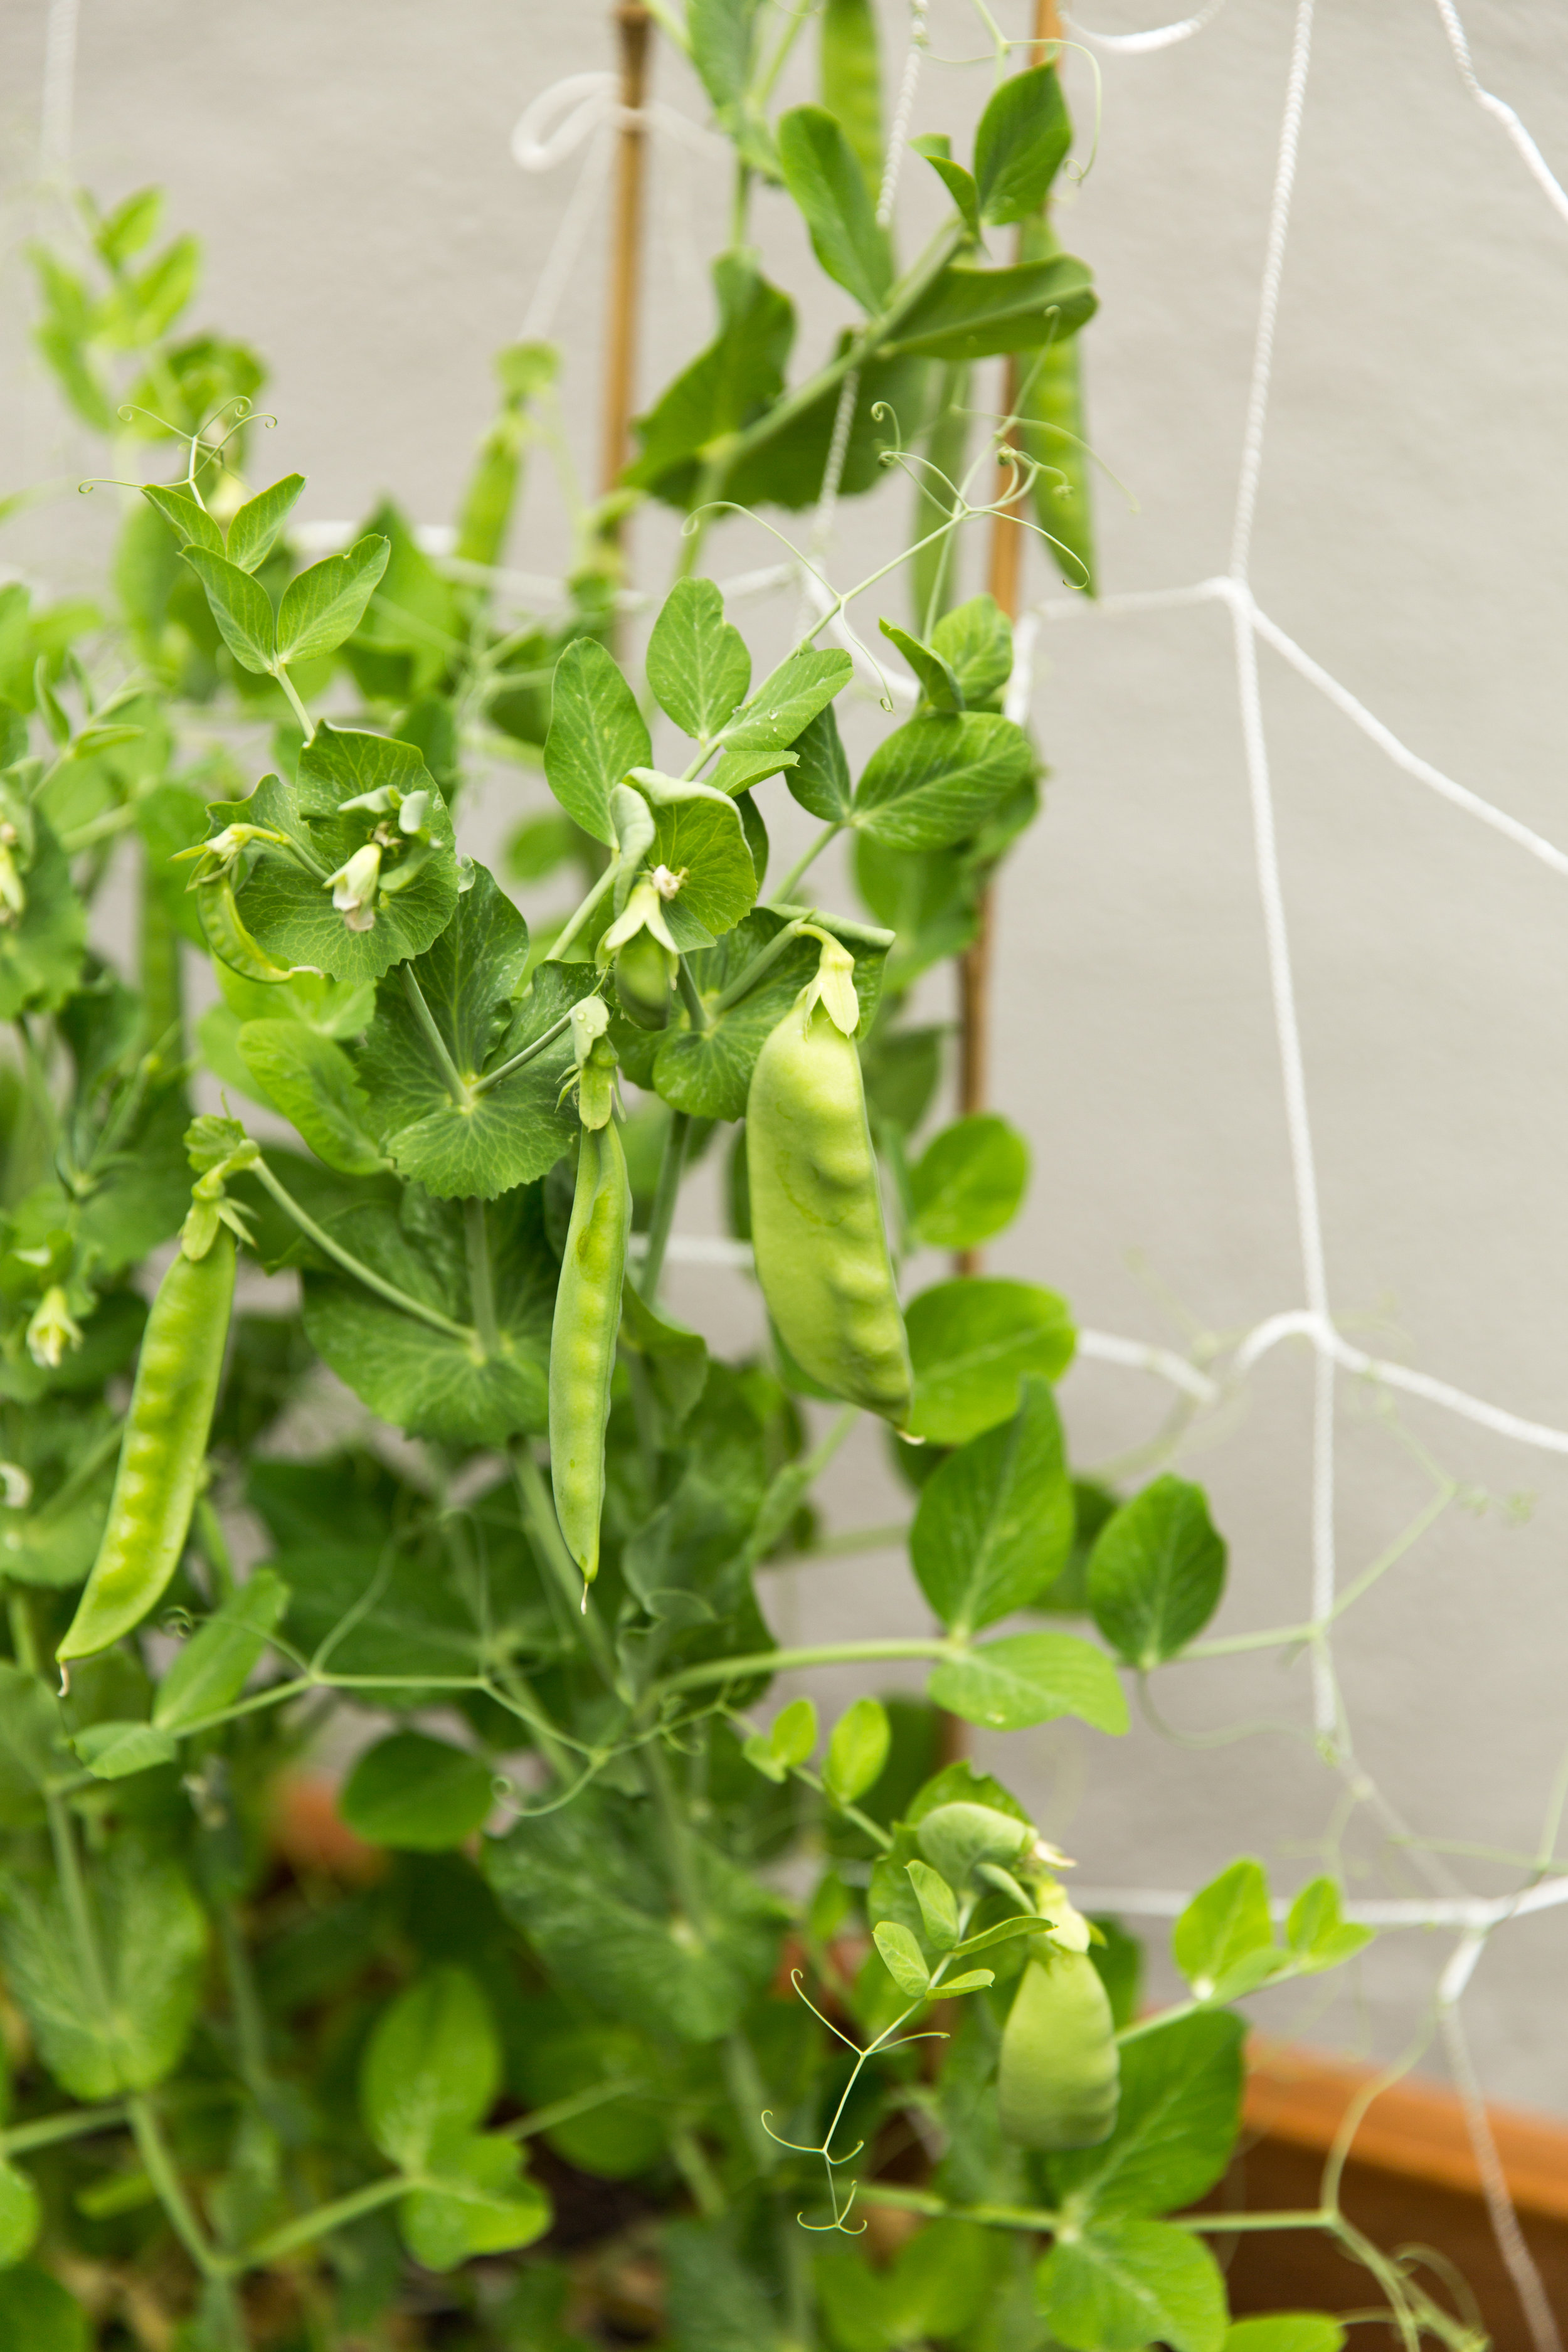 pea pods growing in garden